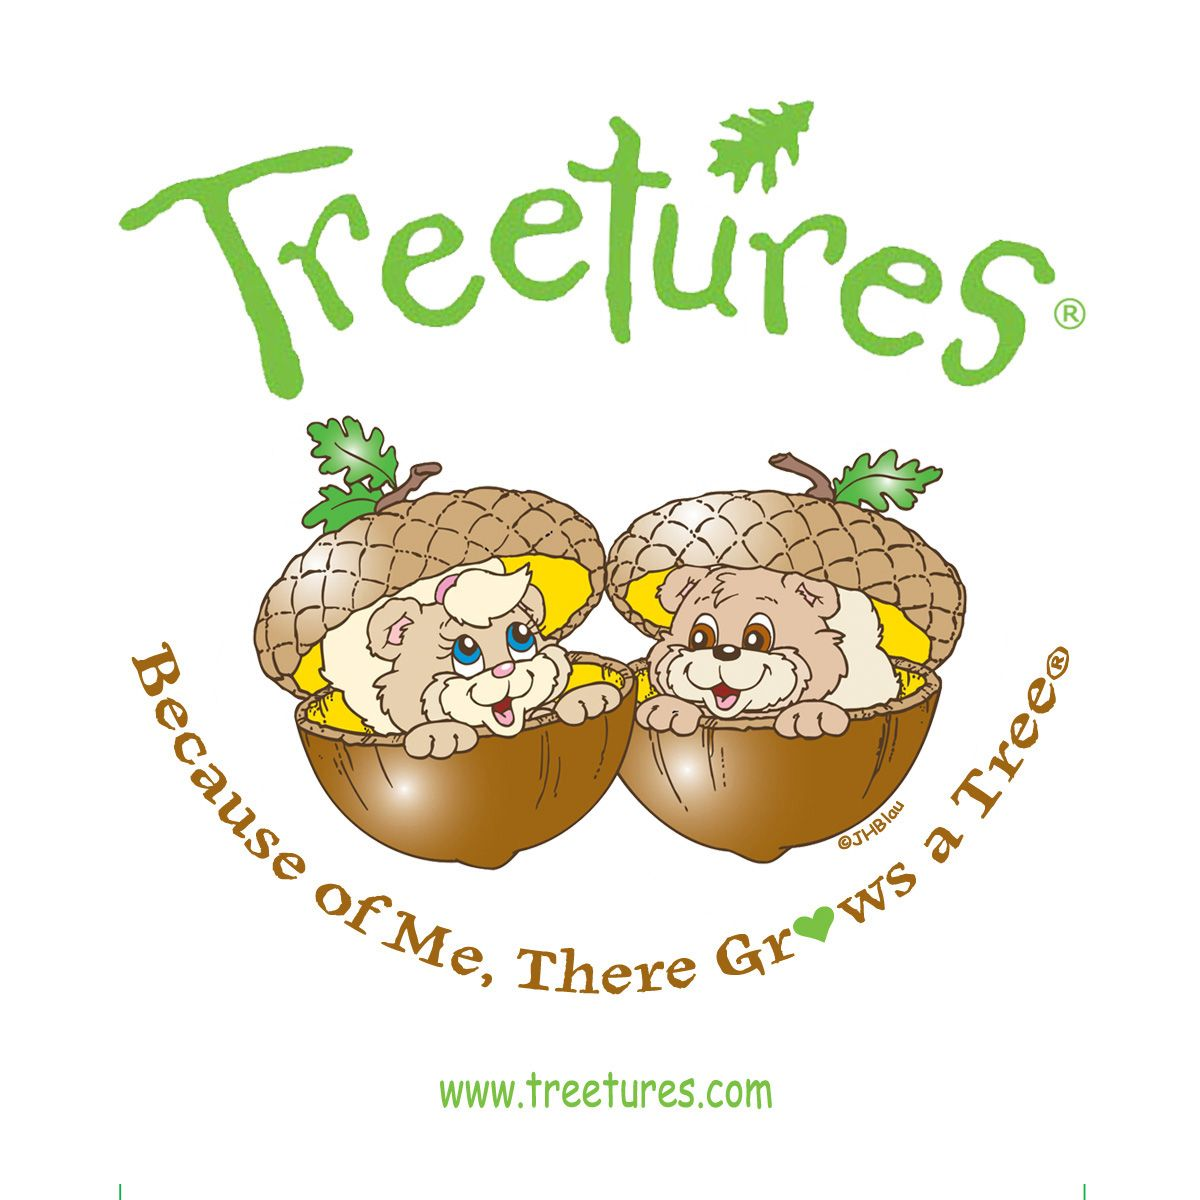 Alliance for Community Trees, resource page for Kids and